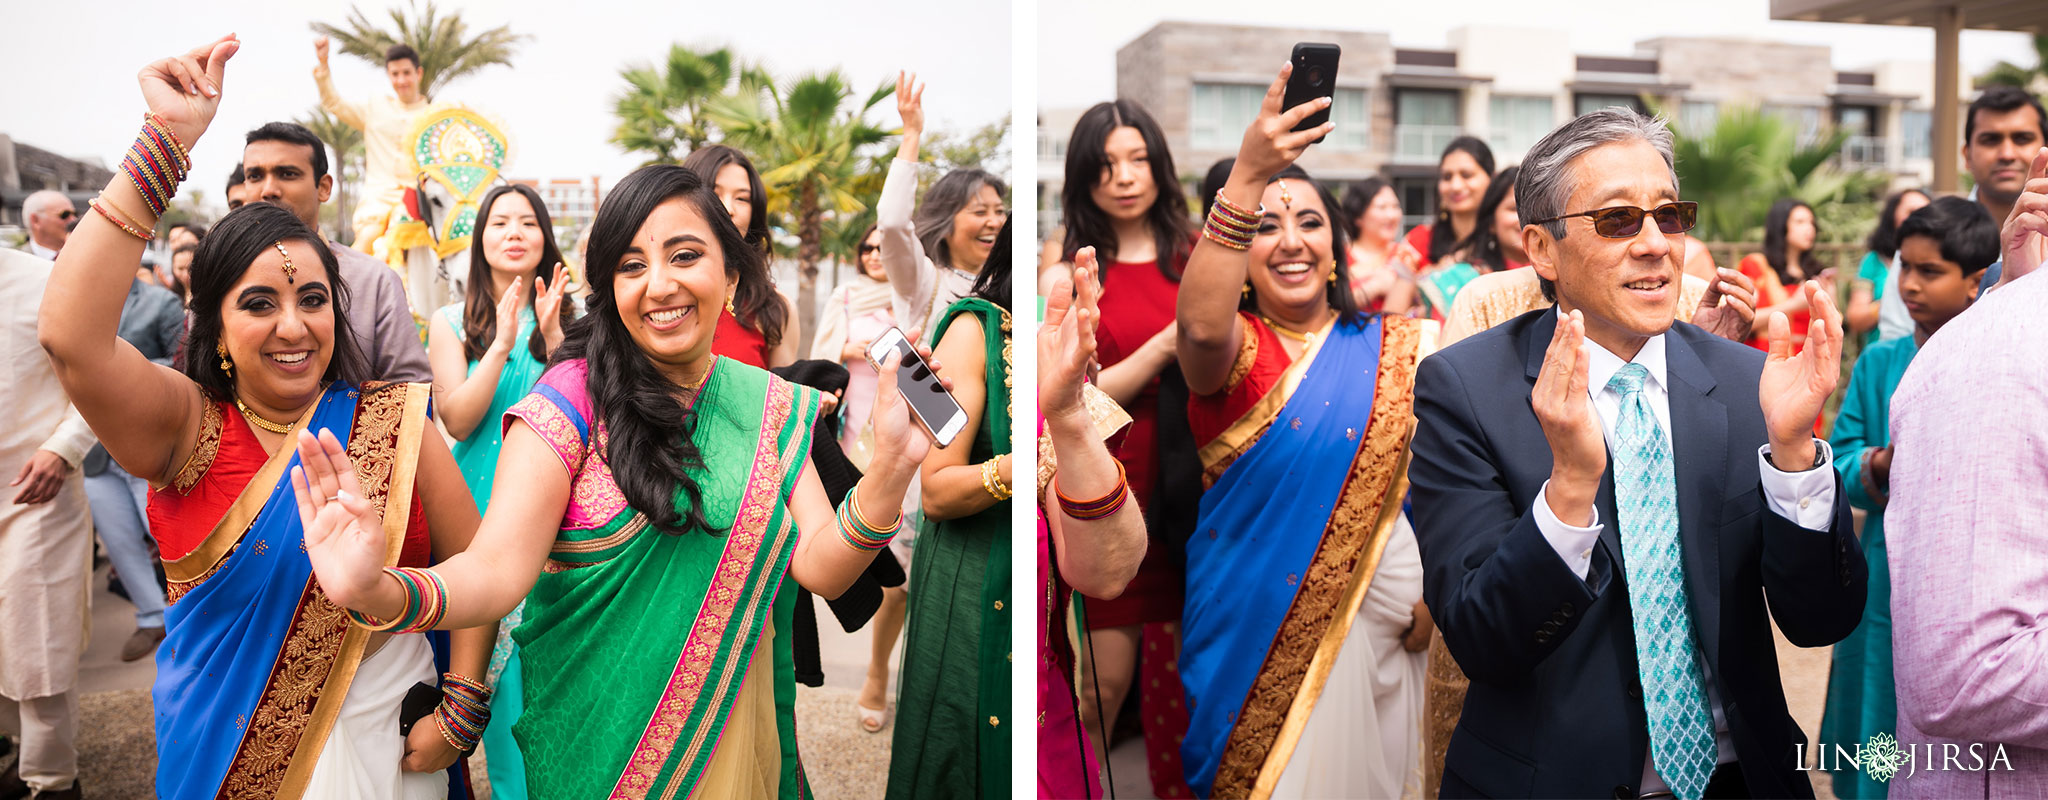 17 pasea hotel and spa huntington beach indian wedding baraat photography